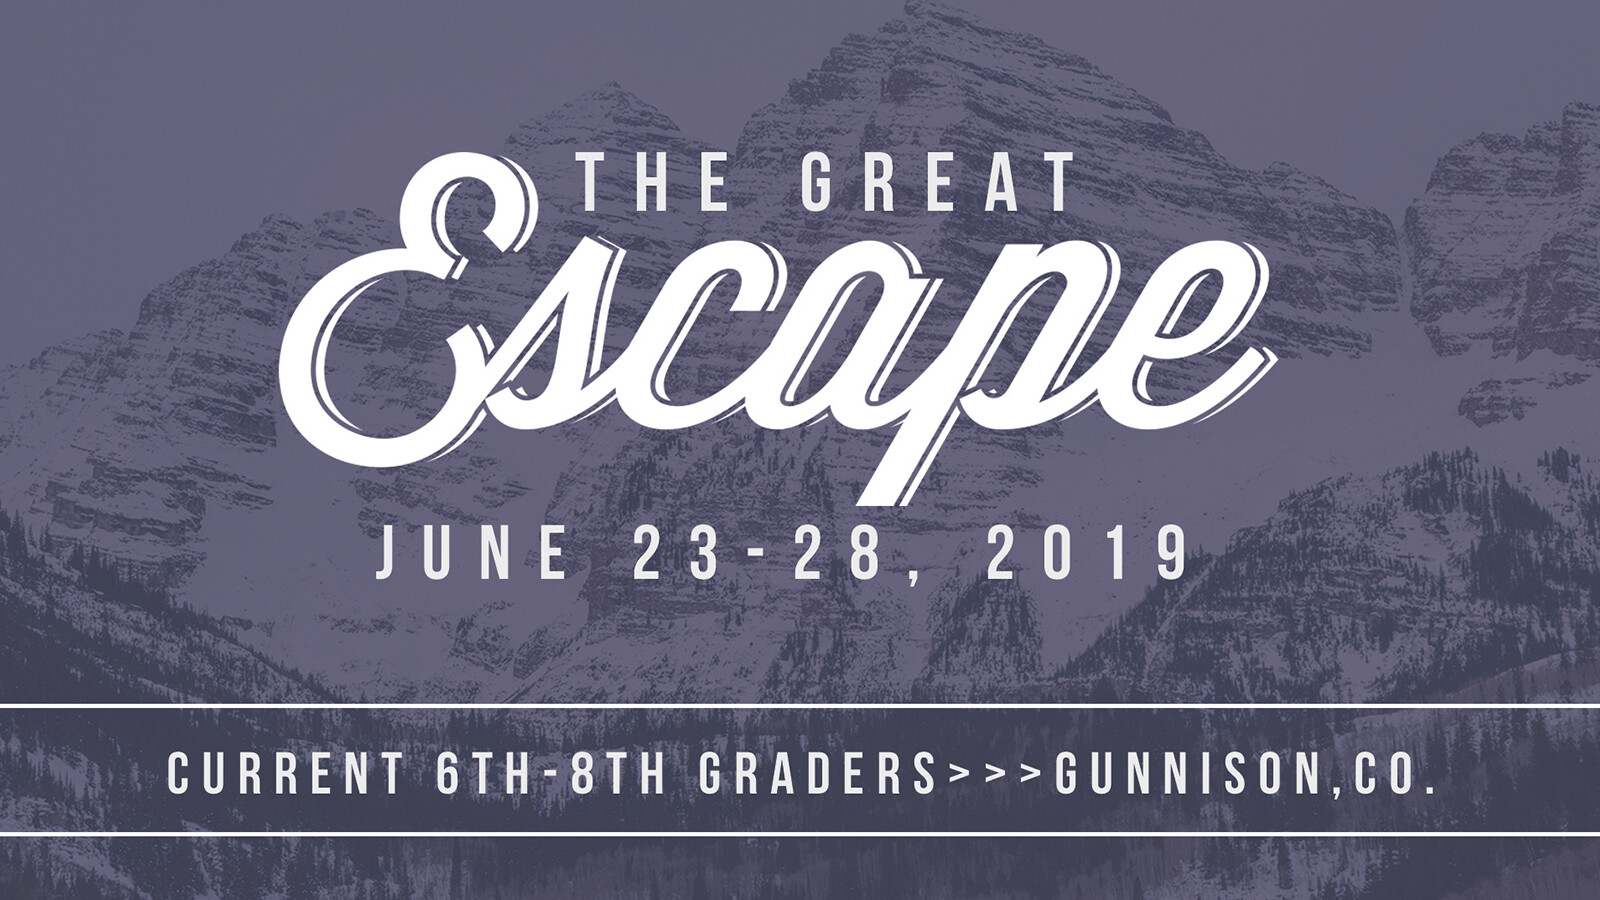 REGISTRATION: The Great Escape 2019